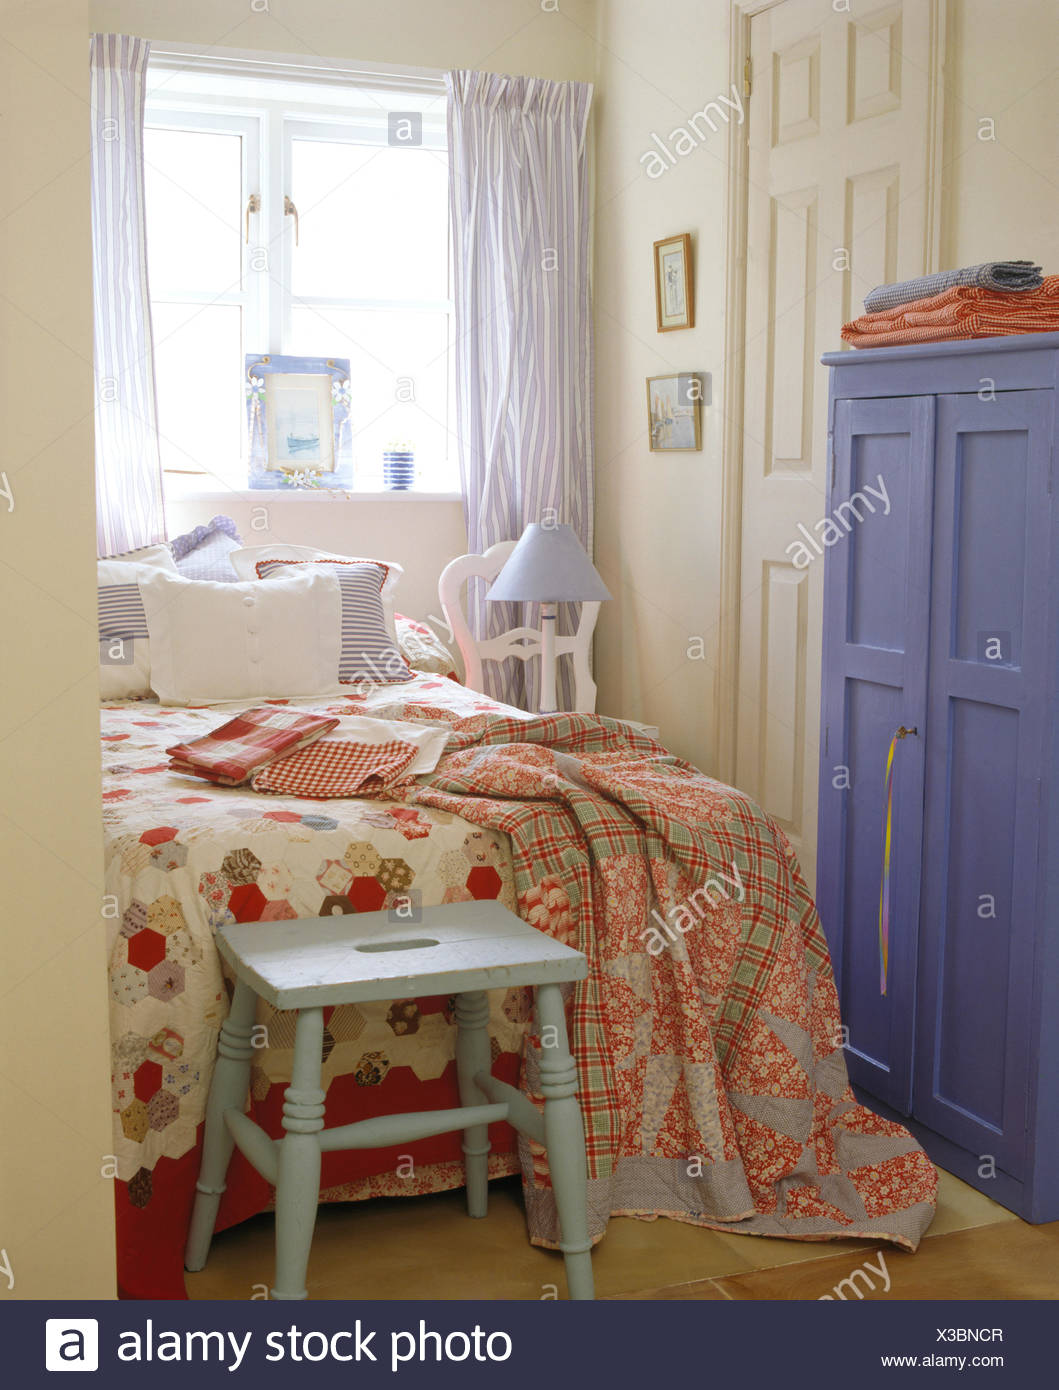 Charmant Painted Stool Below Bed With Patchwork Quilt And Floral Throw In Small  Bedroom With Painted Blue Wardrobe